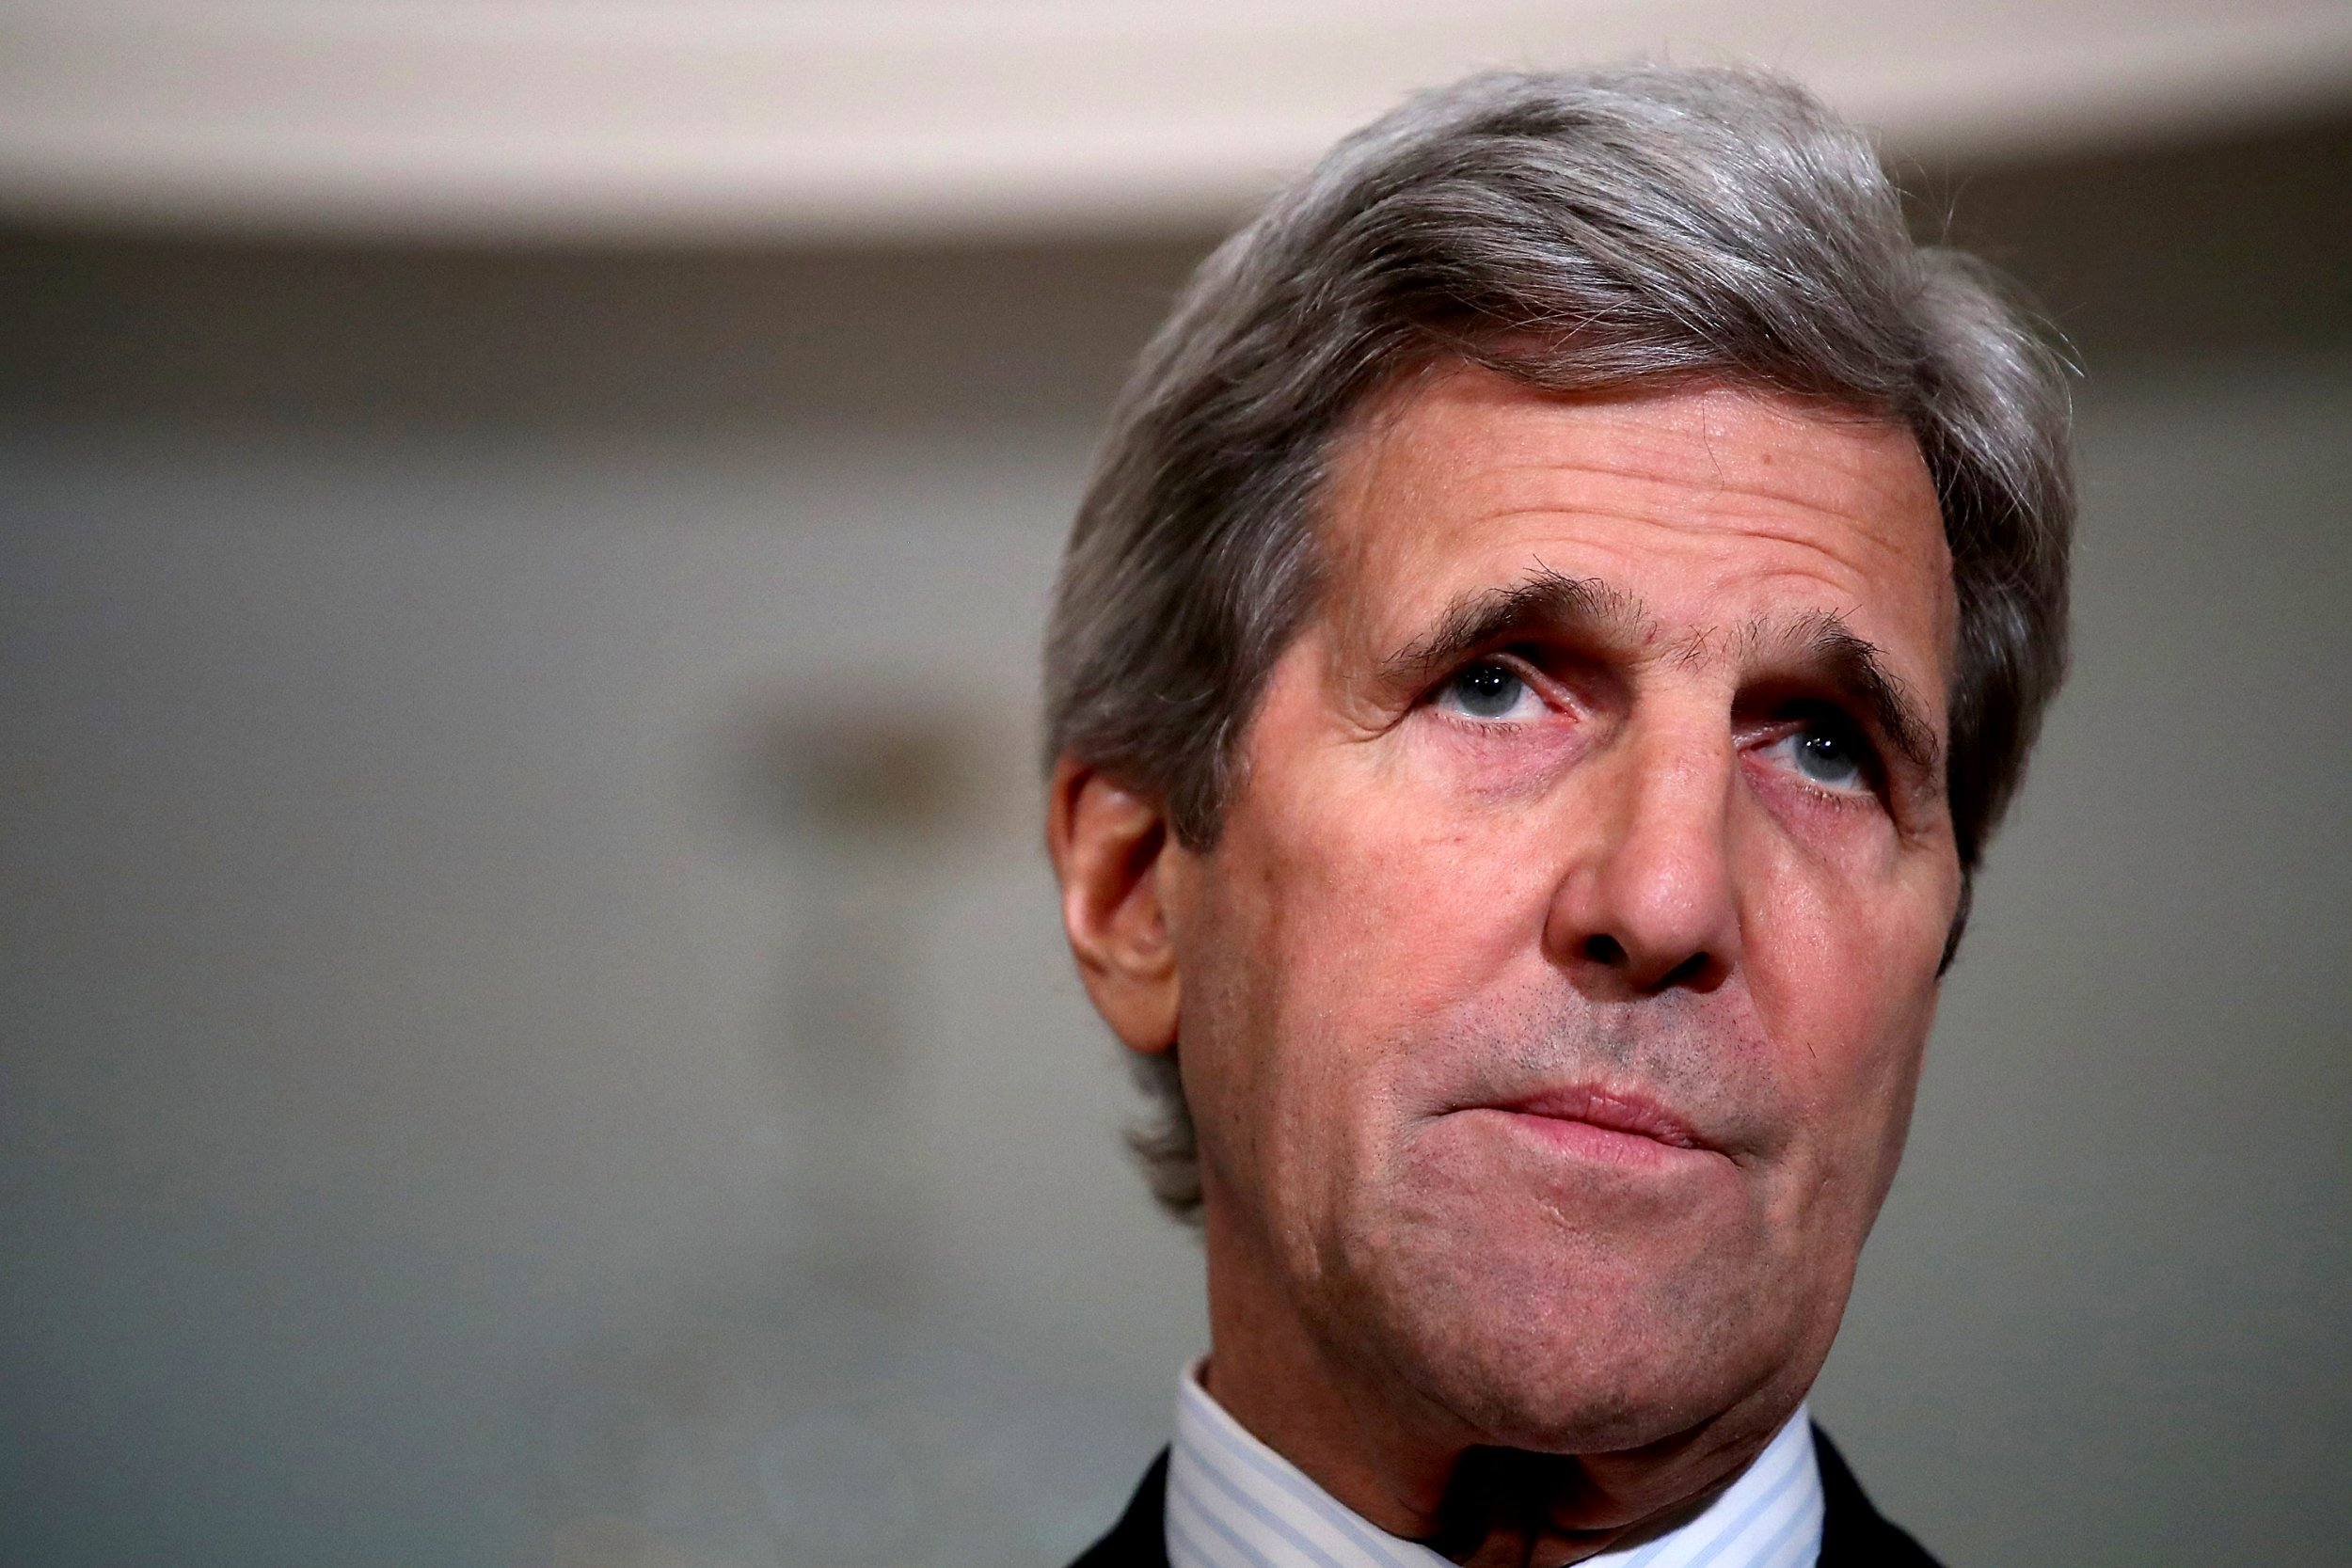 Kerry is quietly seeking to salvage Iran deal he helped craft